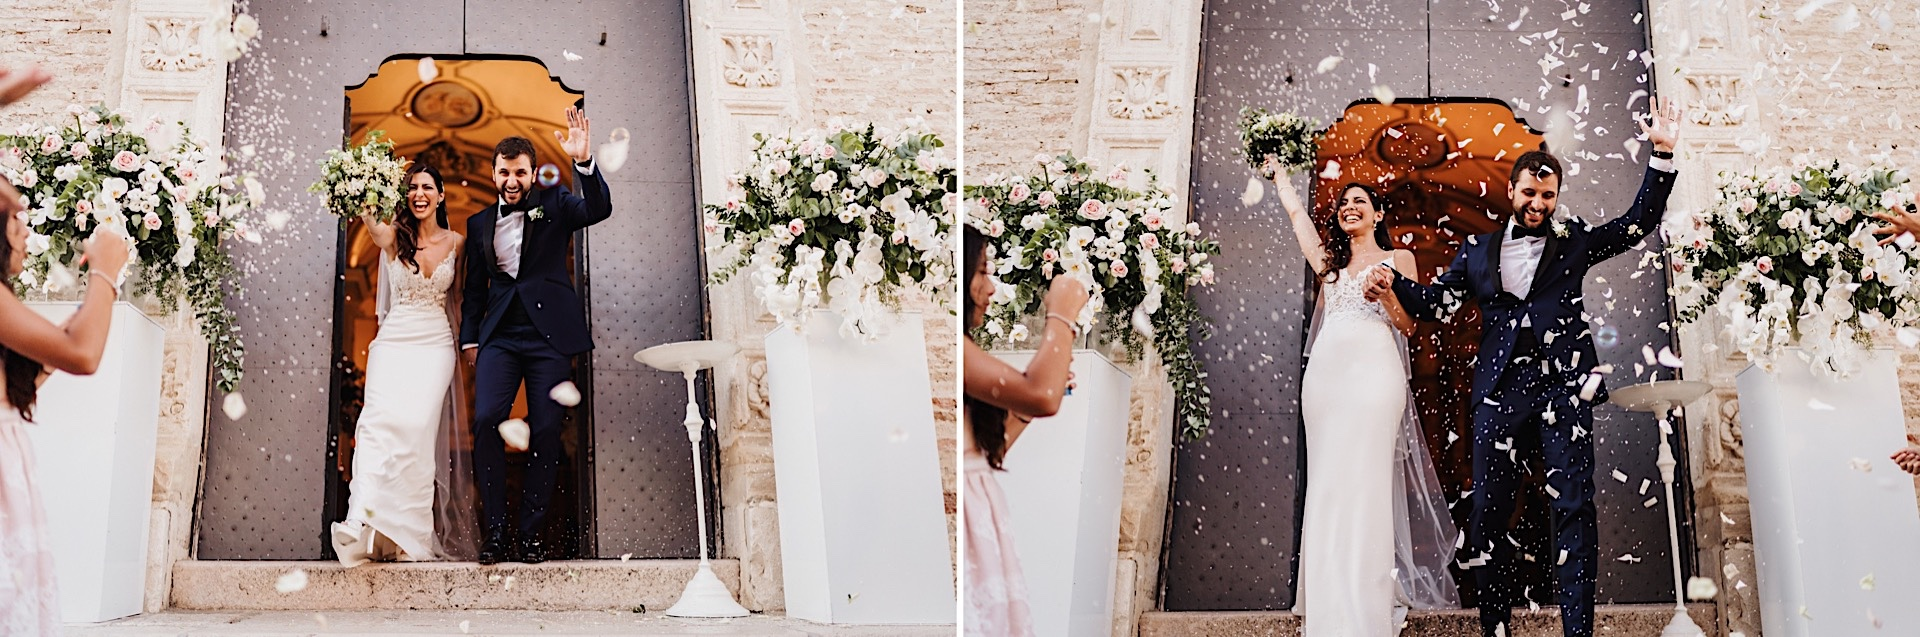 41__DSC9411__DSC9412_photography_destination_photographer_puglia_apulian_marriage_wedding